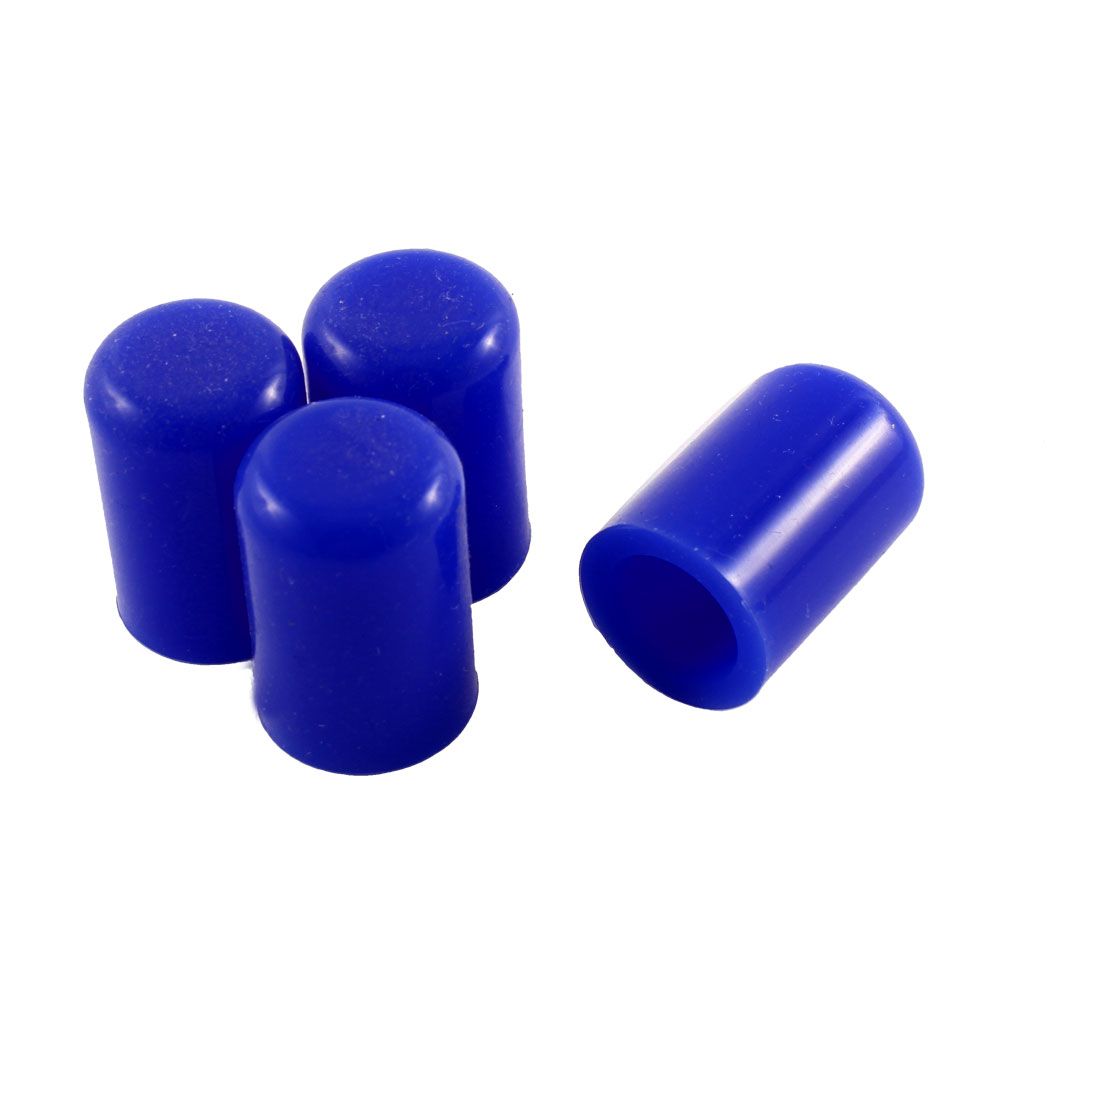 4 Pcs 16mm Blue Silicone Blanking Cap Intake Vacuum Hose End Bung Plug